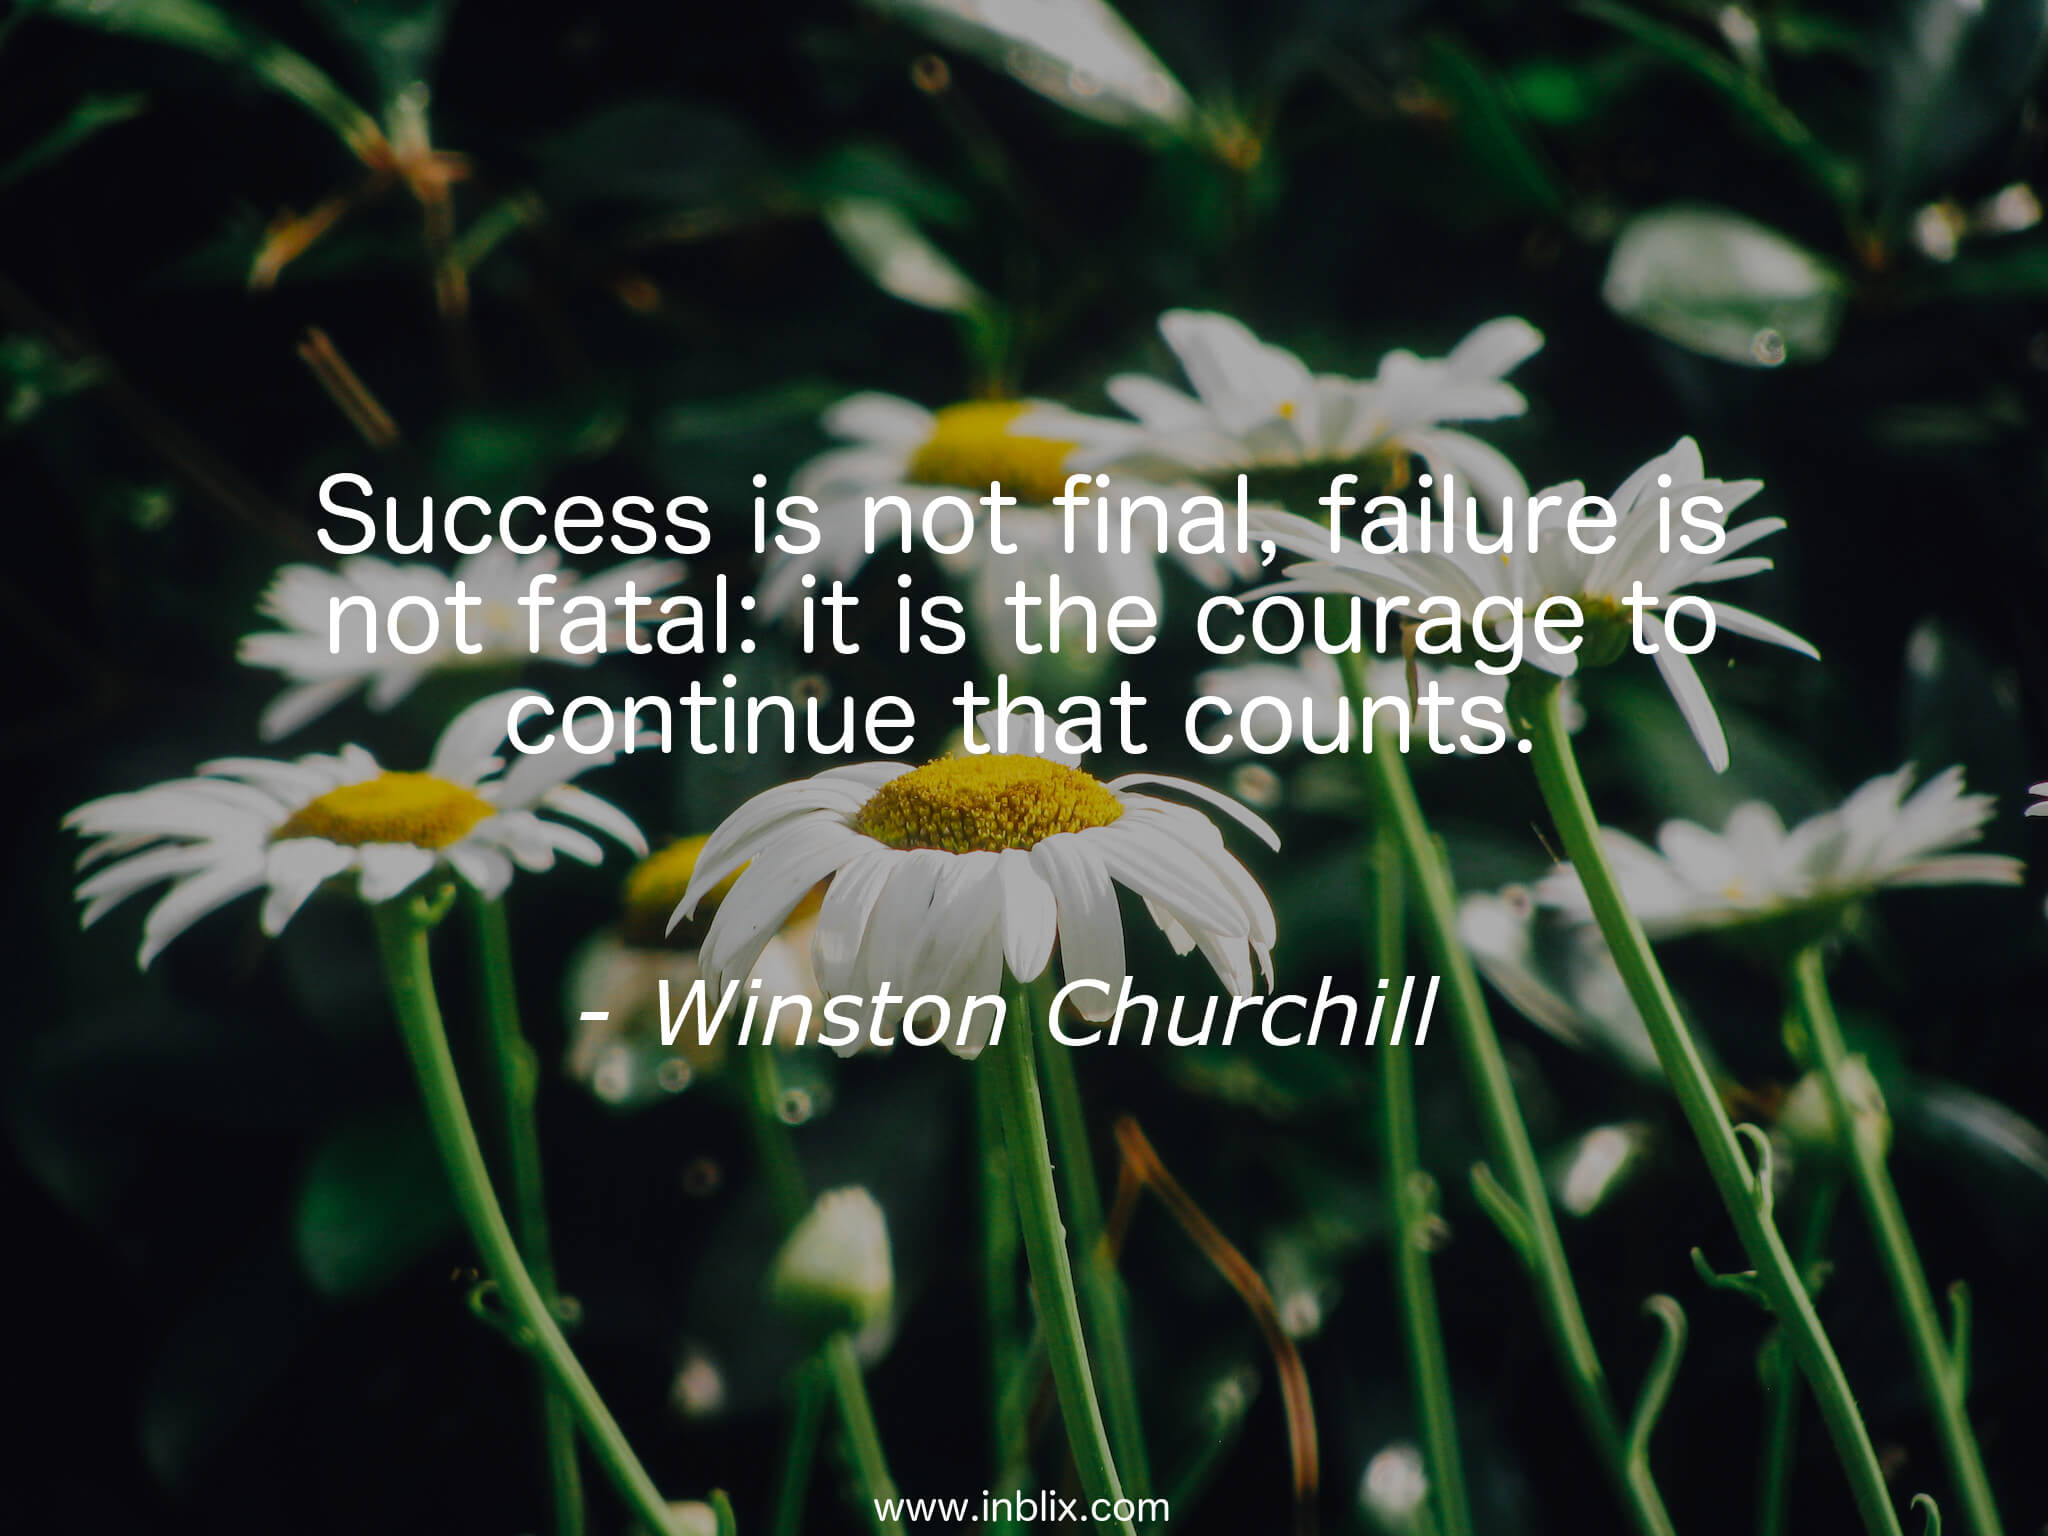 Success is not final, failure is not fatal; it is the courage to continue that counts.